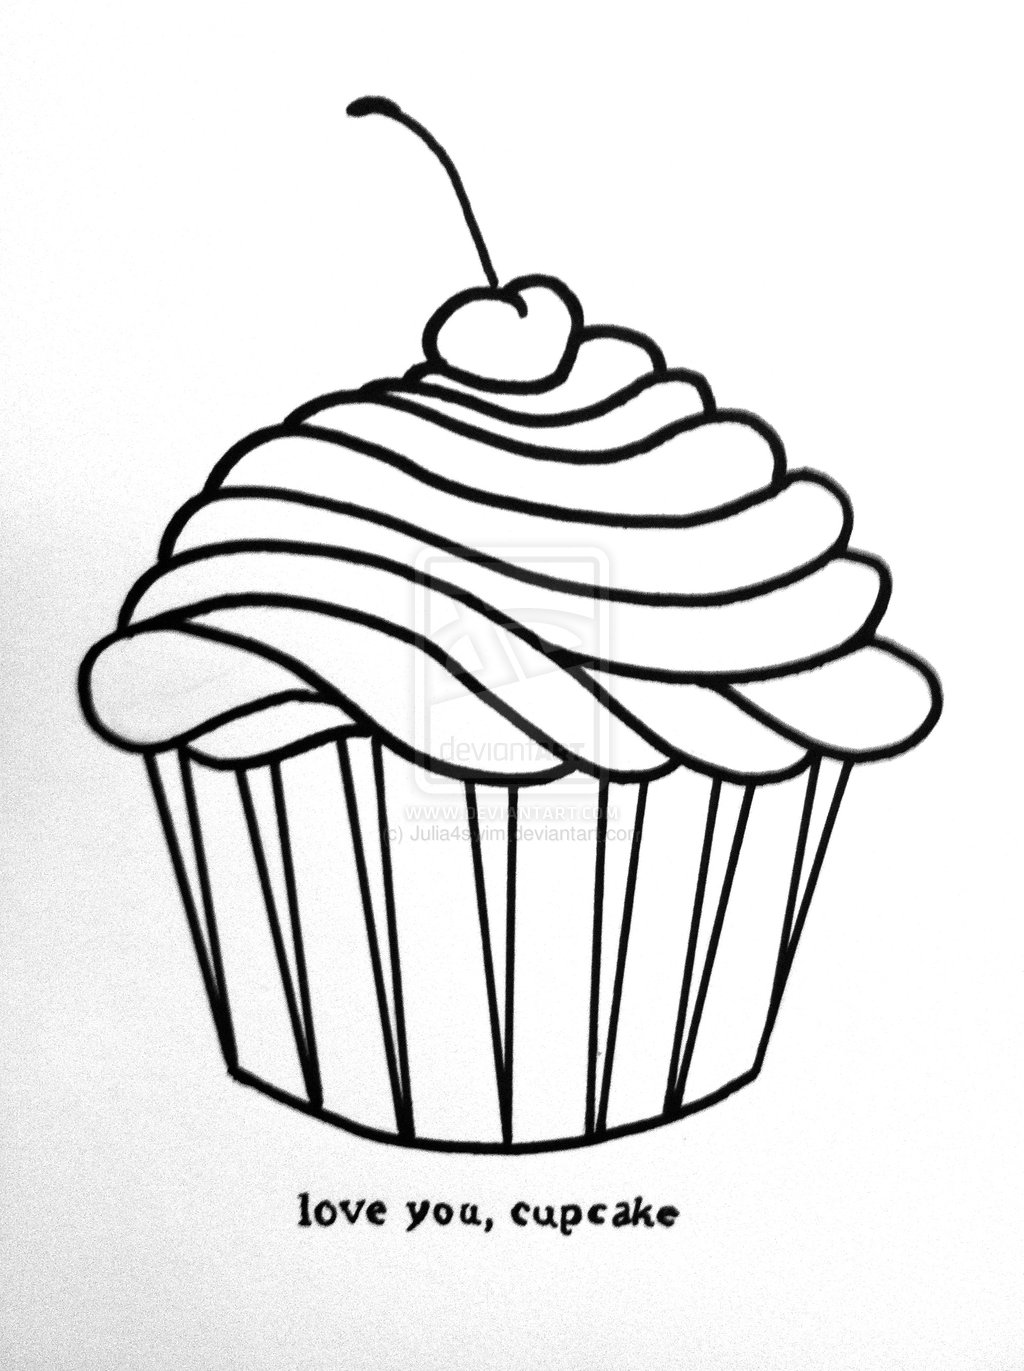 Line Drawing Cake : Cupcake line drawing cliparts